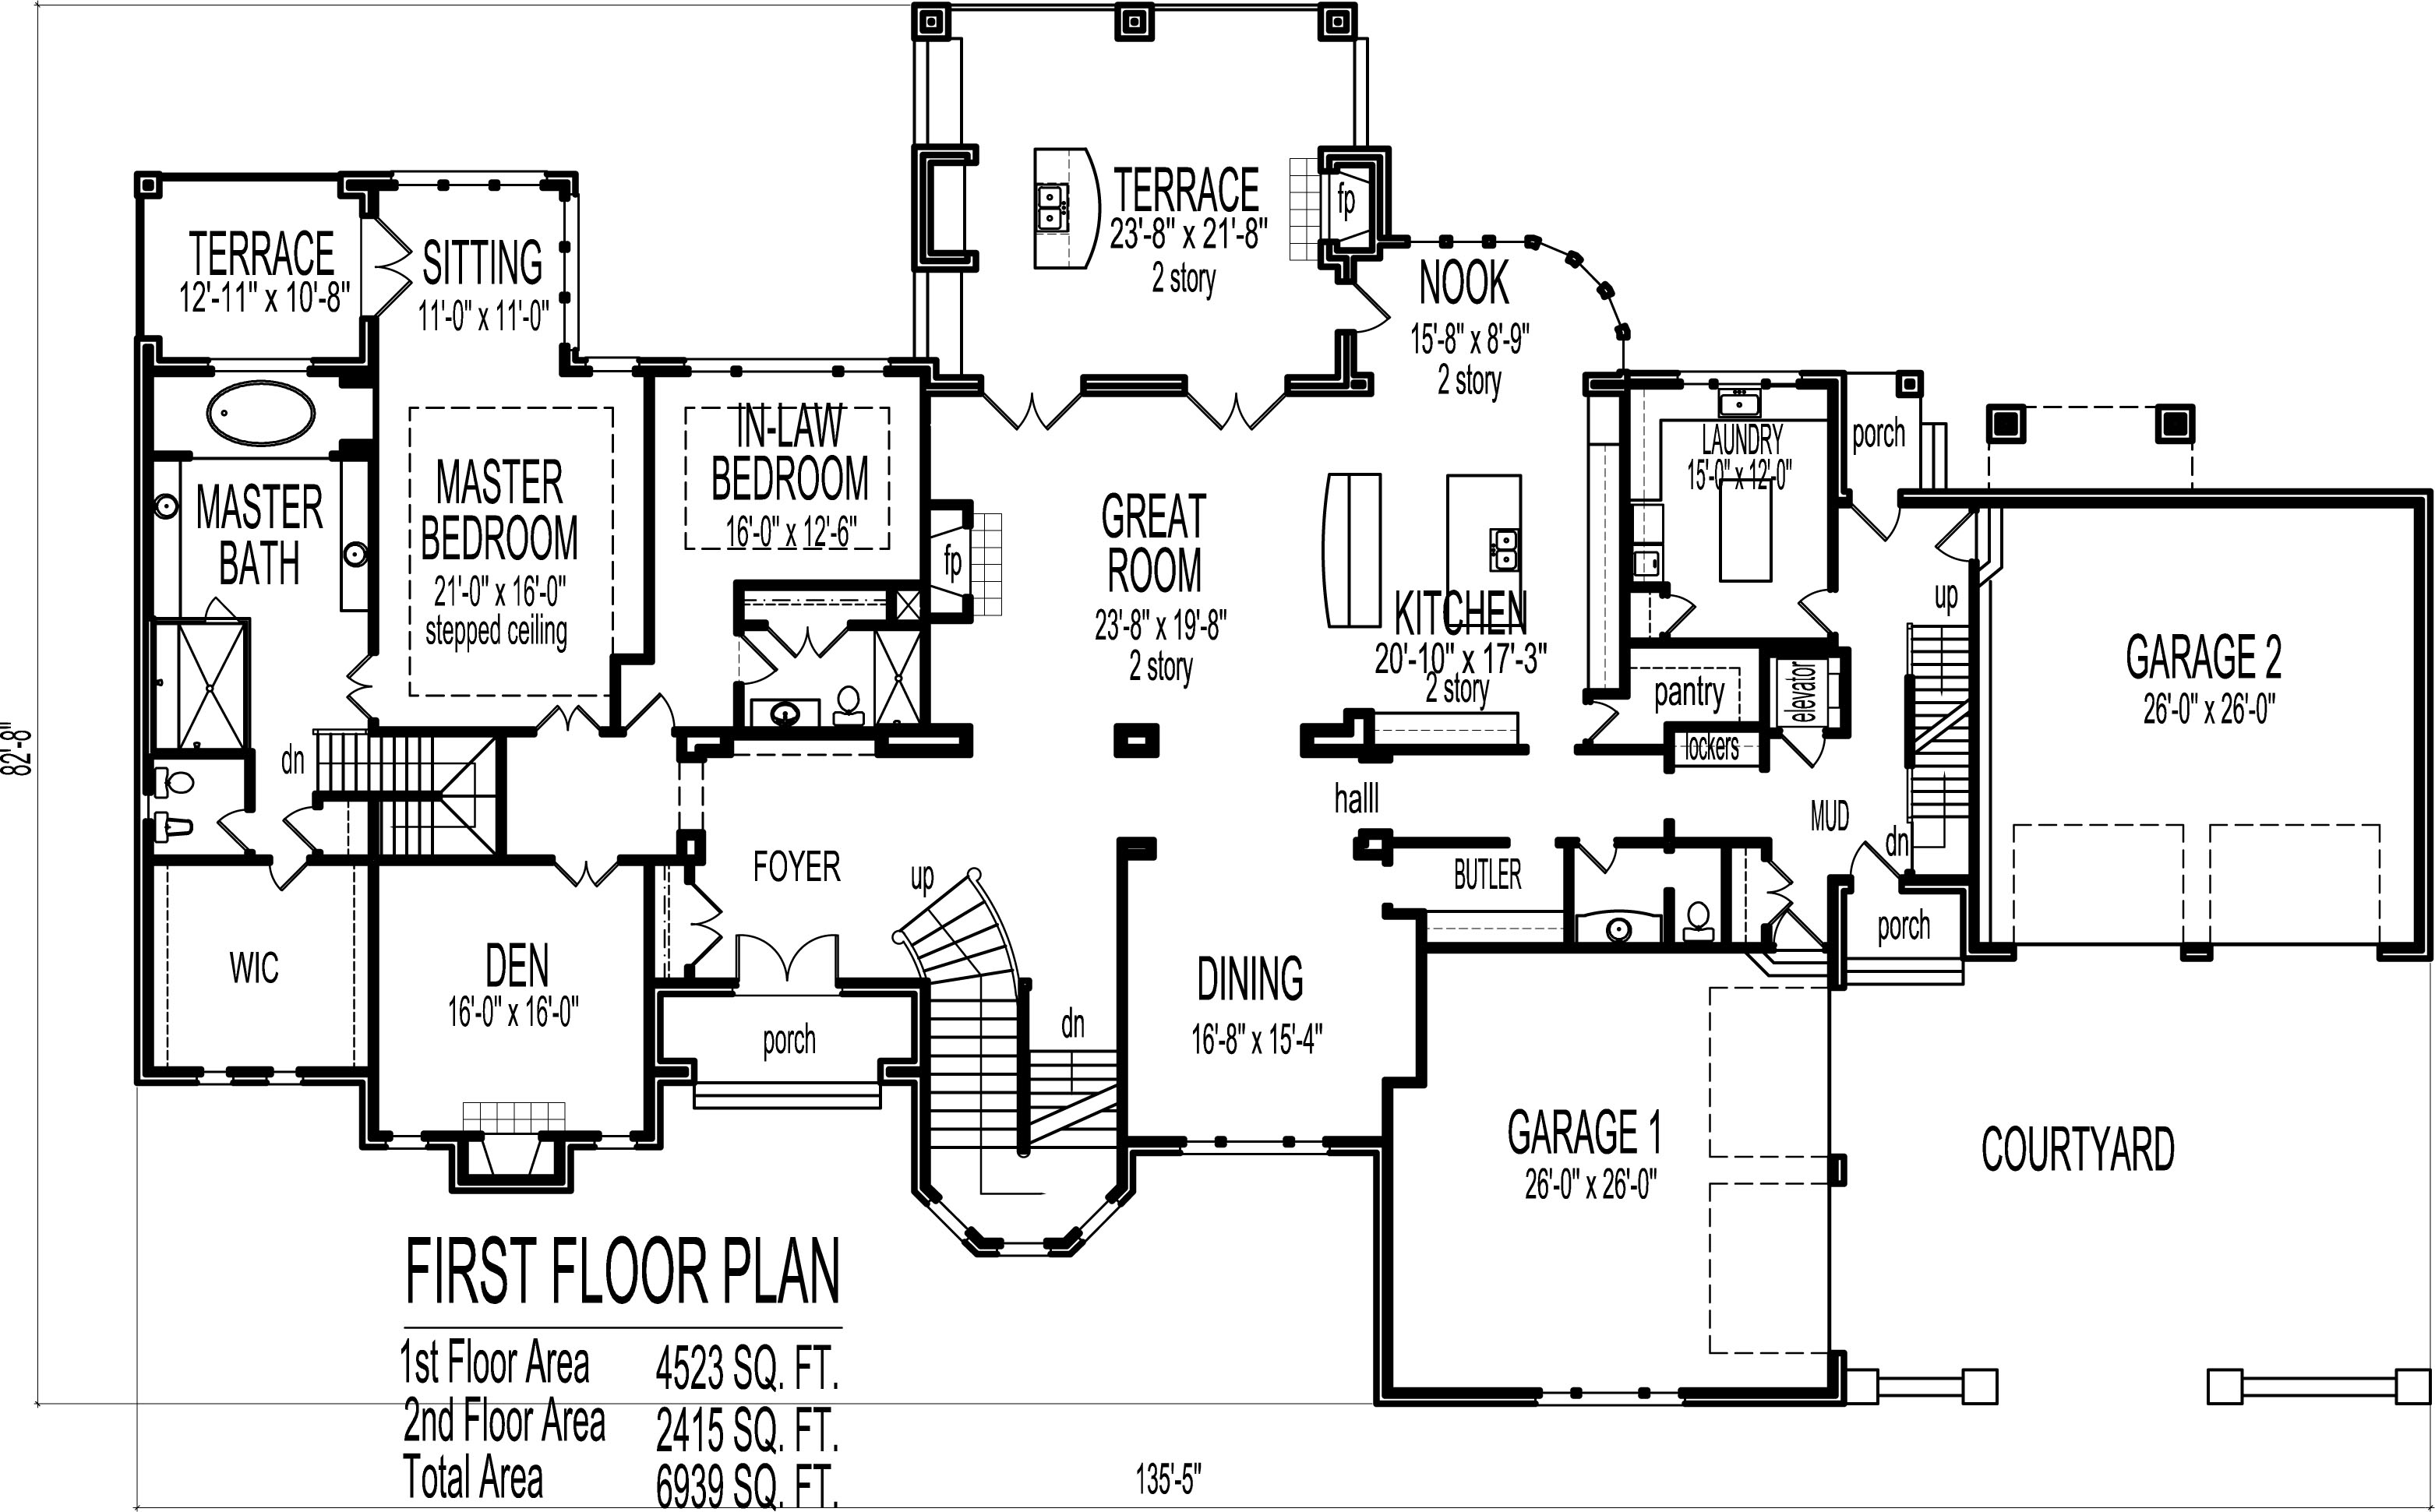 Mansion house floor plans blueprints 6 bedroom 2 story for 6 bedroom country house plans